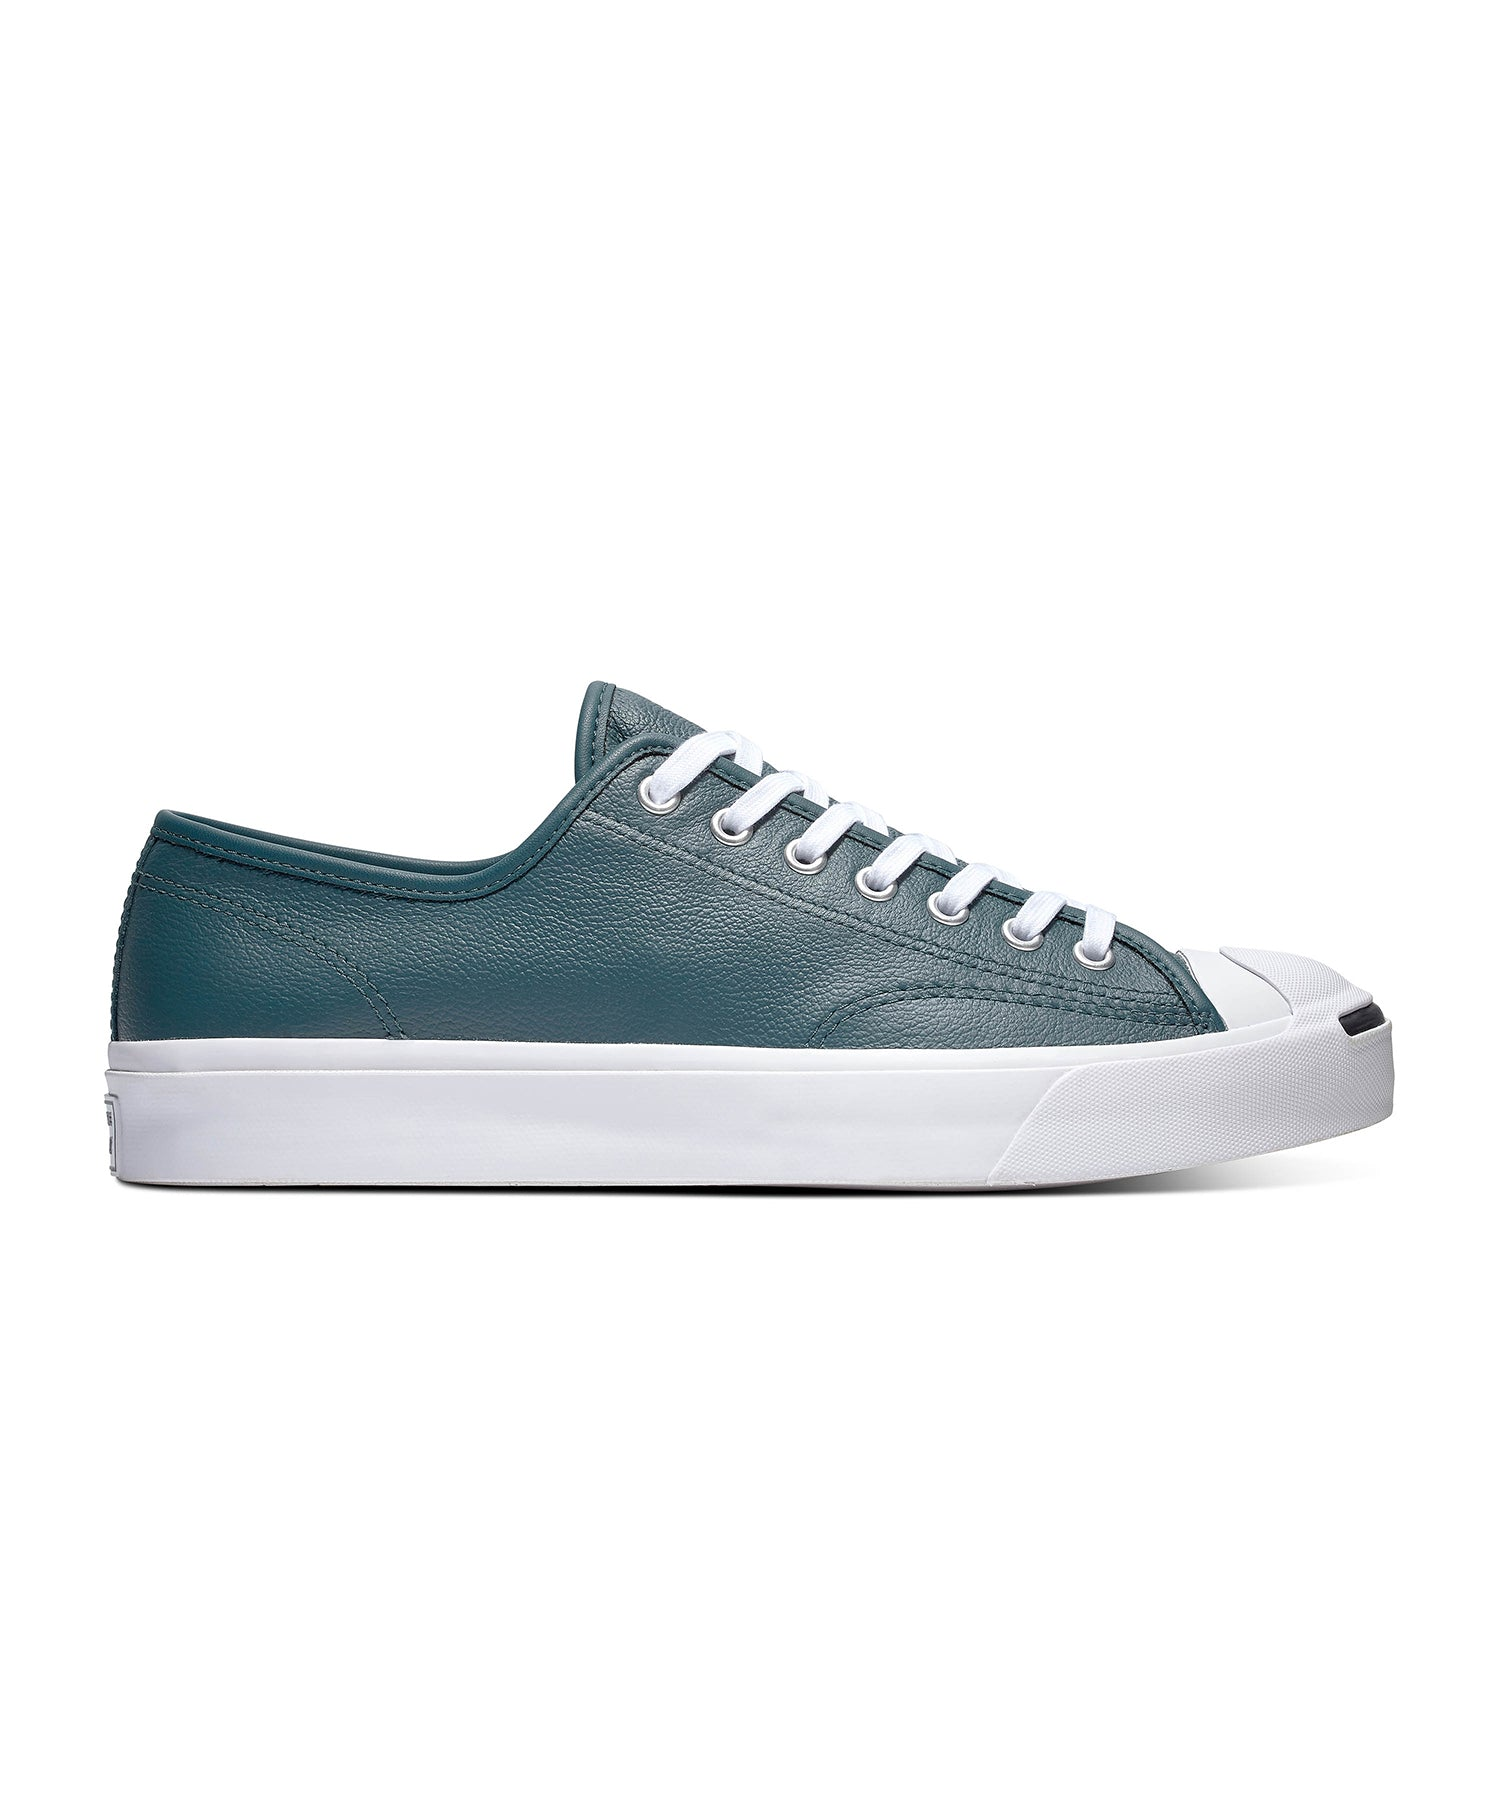 Converse Leather Jack Purcell in Faded Spruce